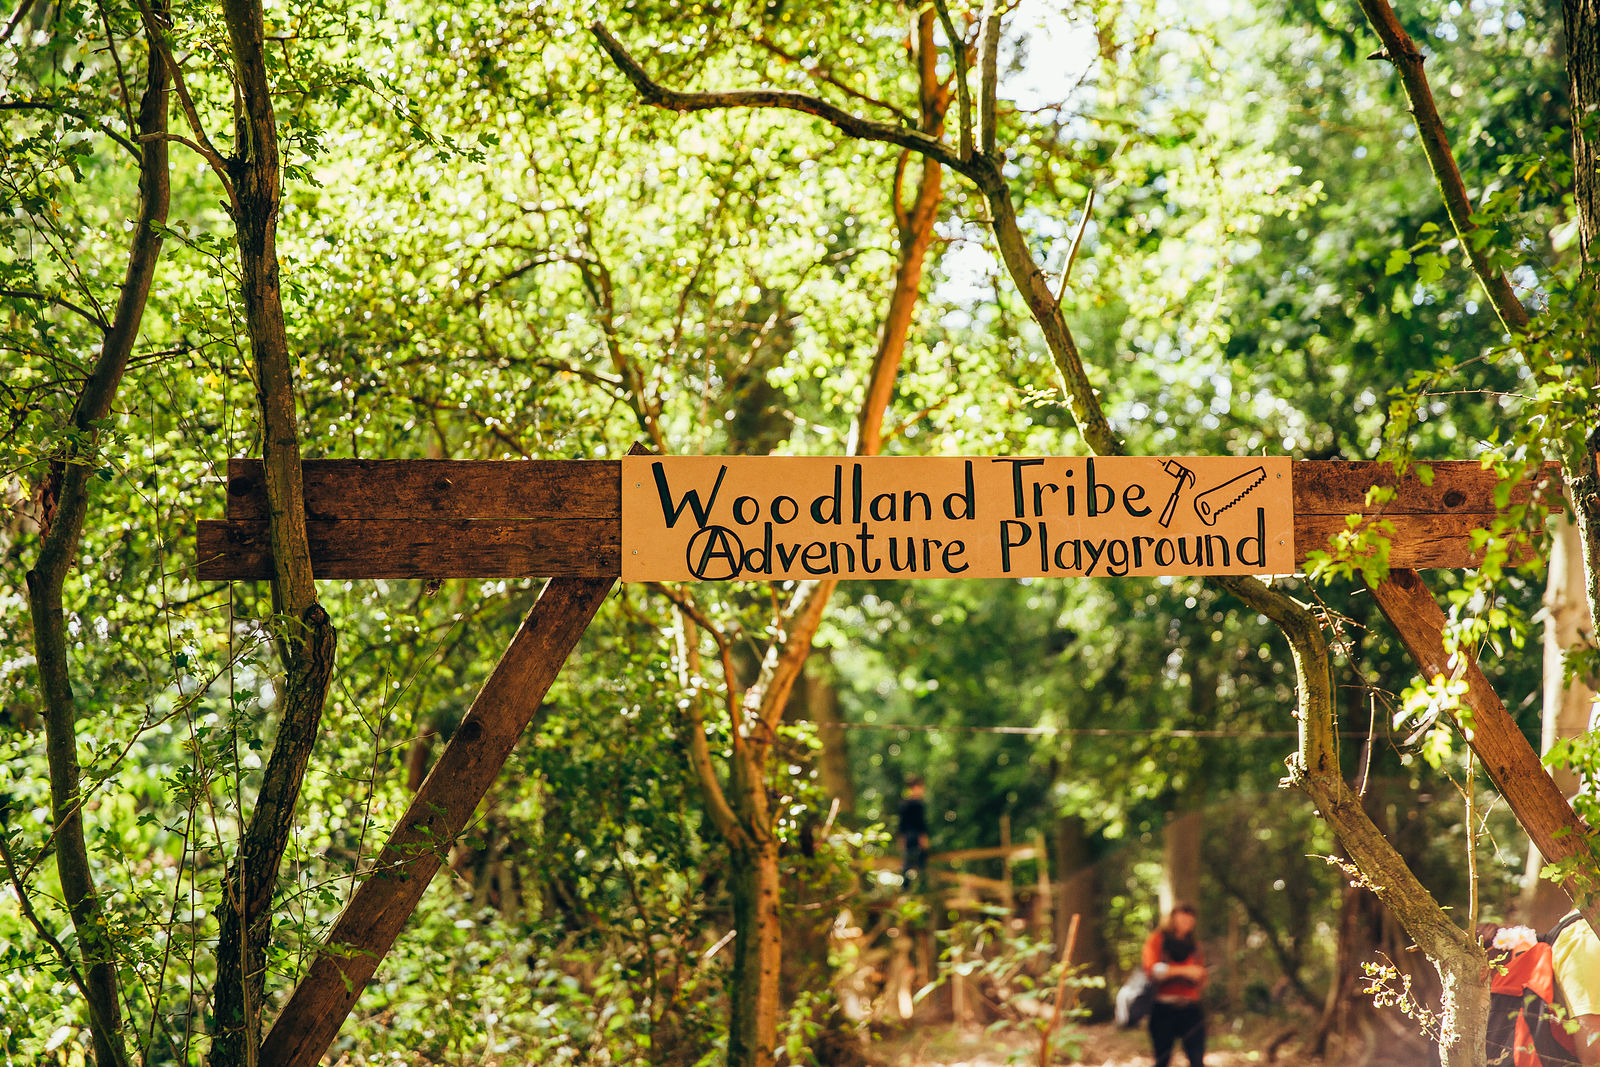 The Woodland Tribe